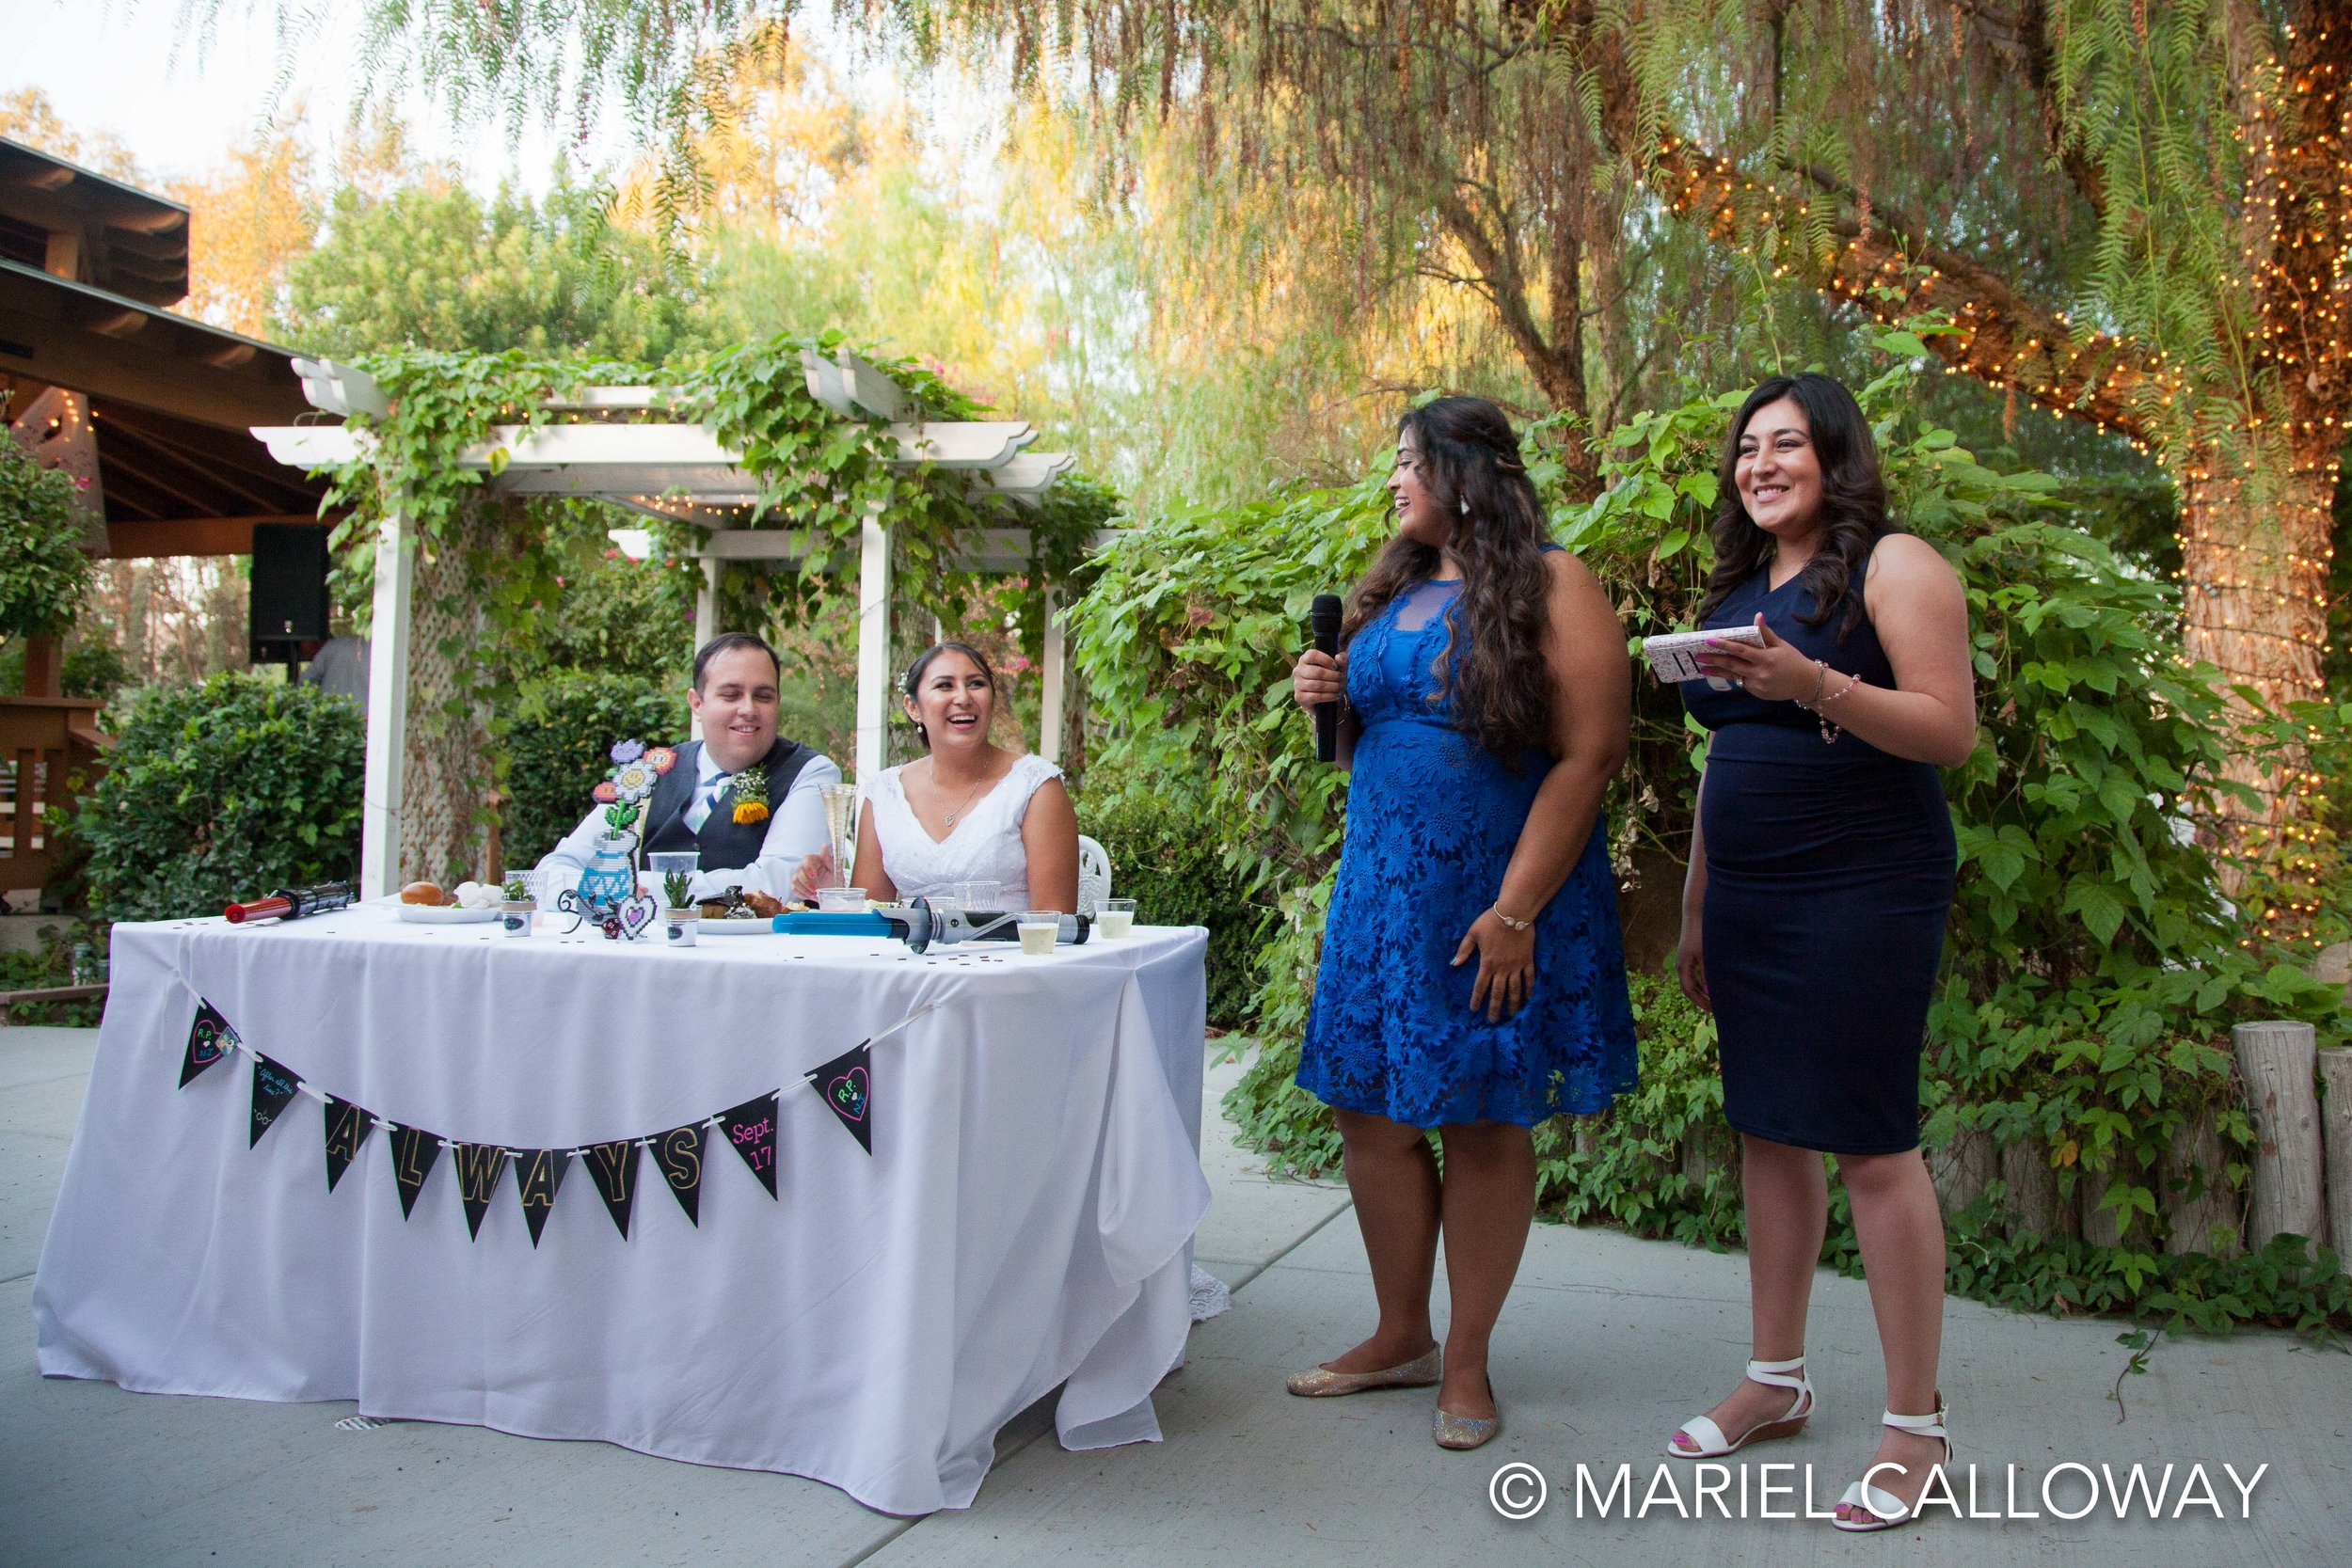 Mariel-Calloway-Wedding-Photographer-Los-Angeles-NatRory-26.jpg